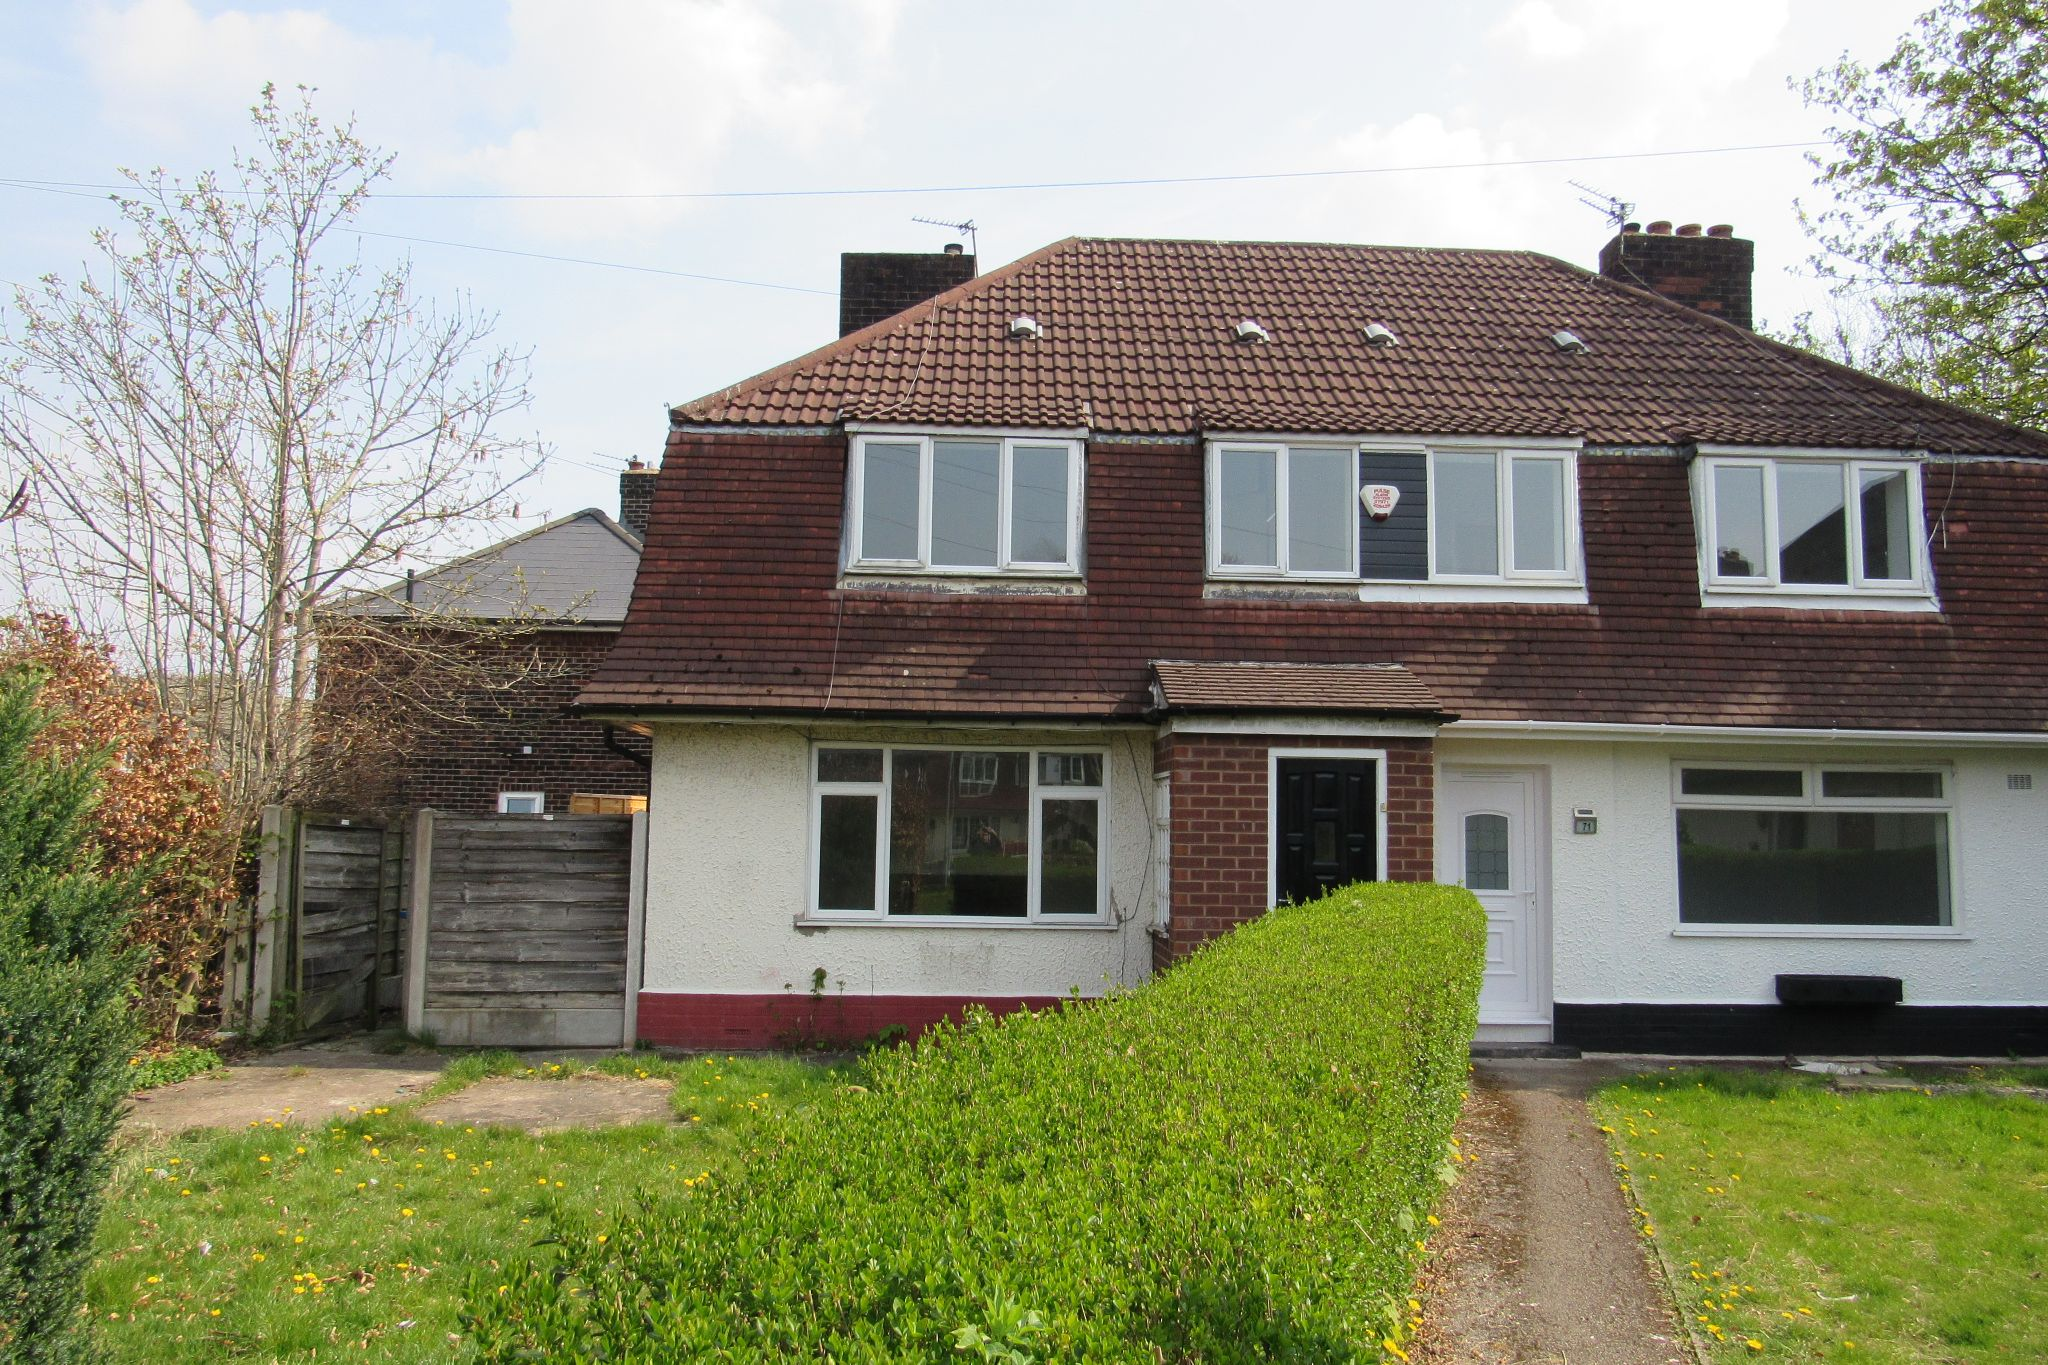 3 bedroom semi-detached house SSTC in Manchester - Photograph 3.